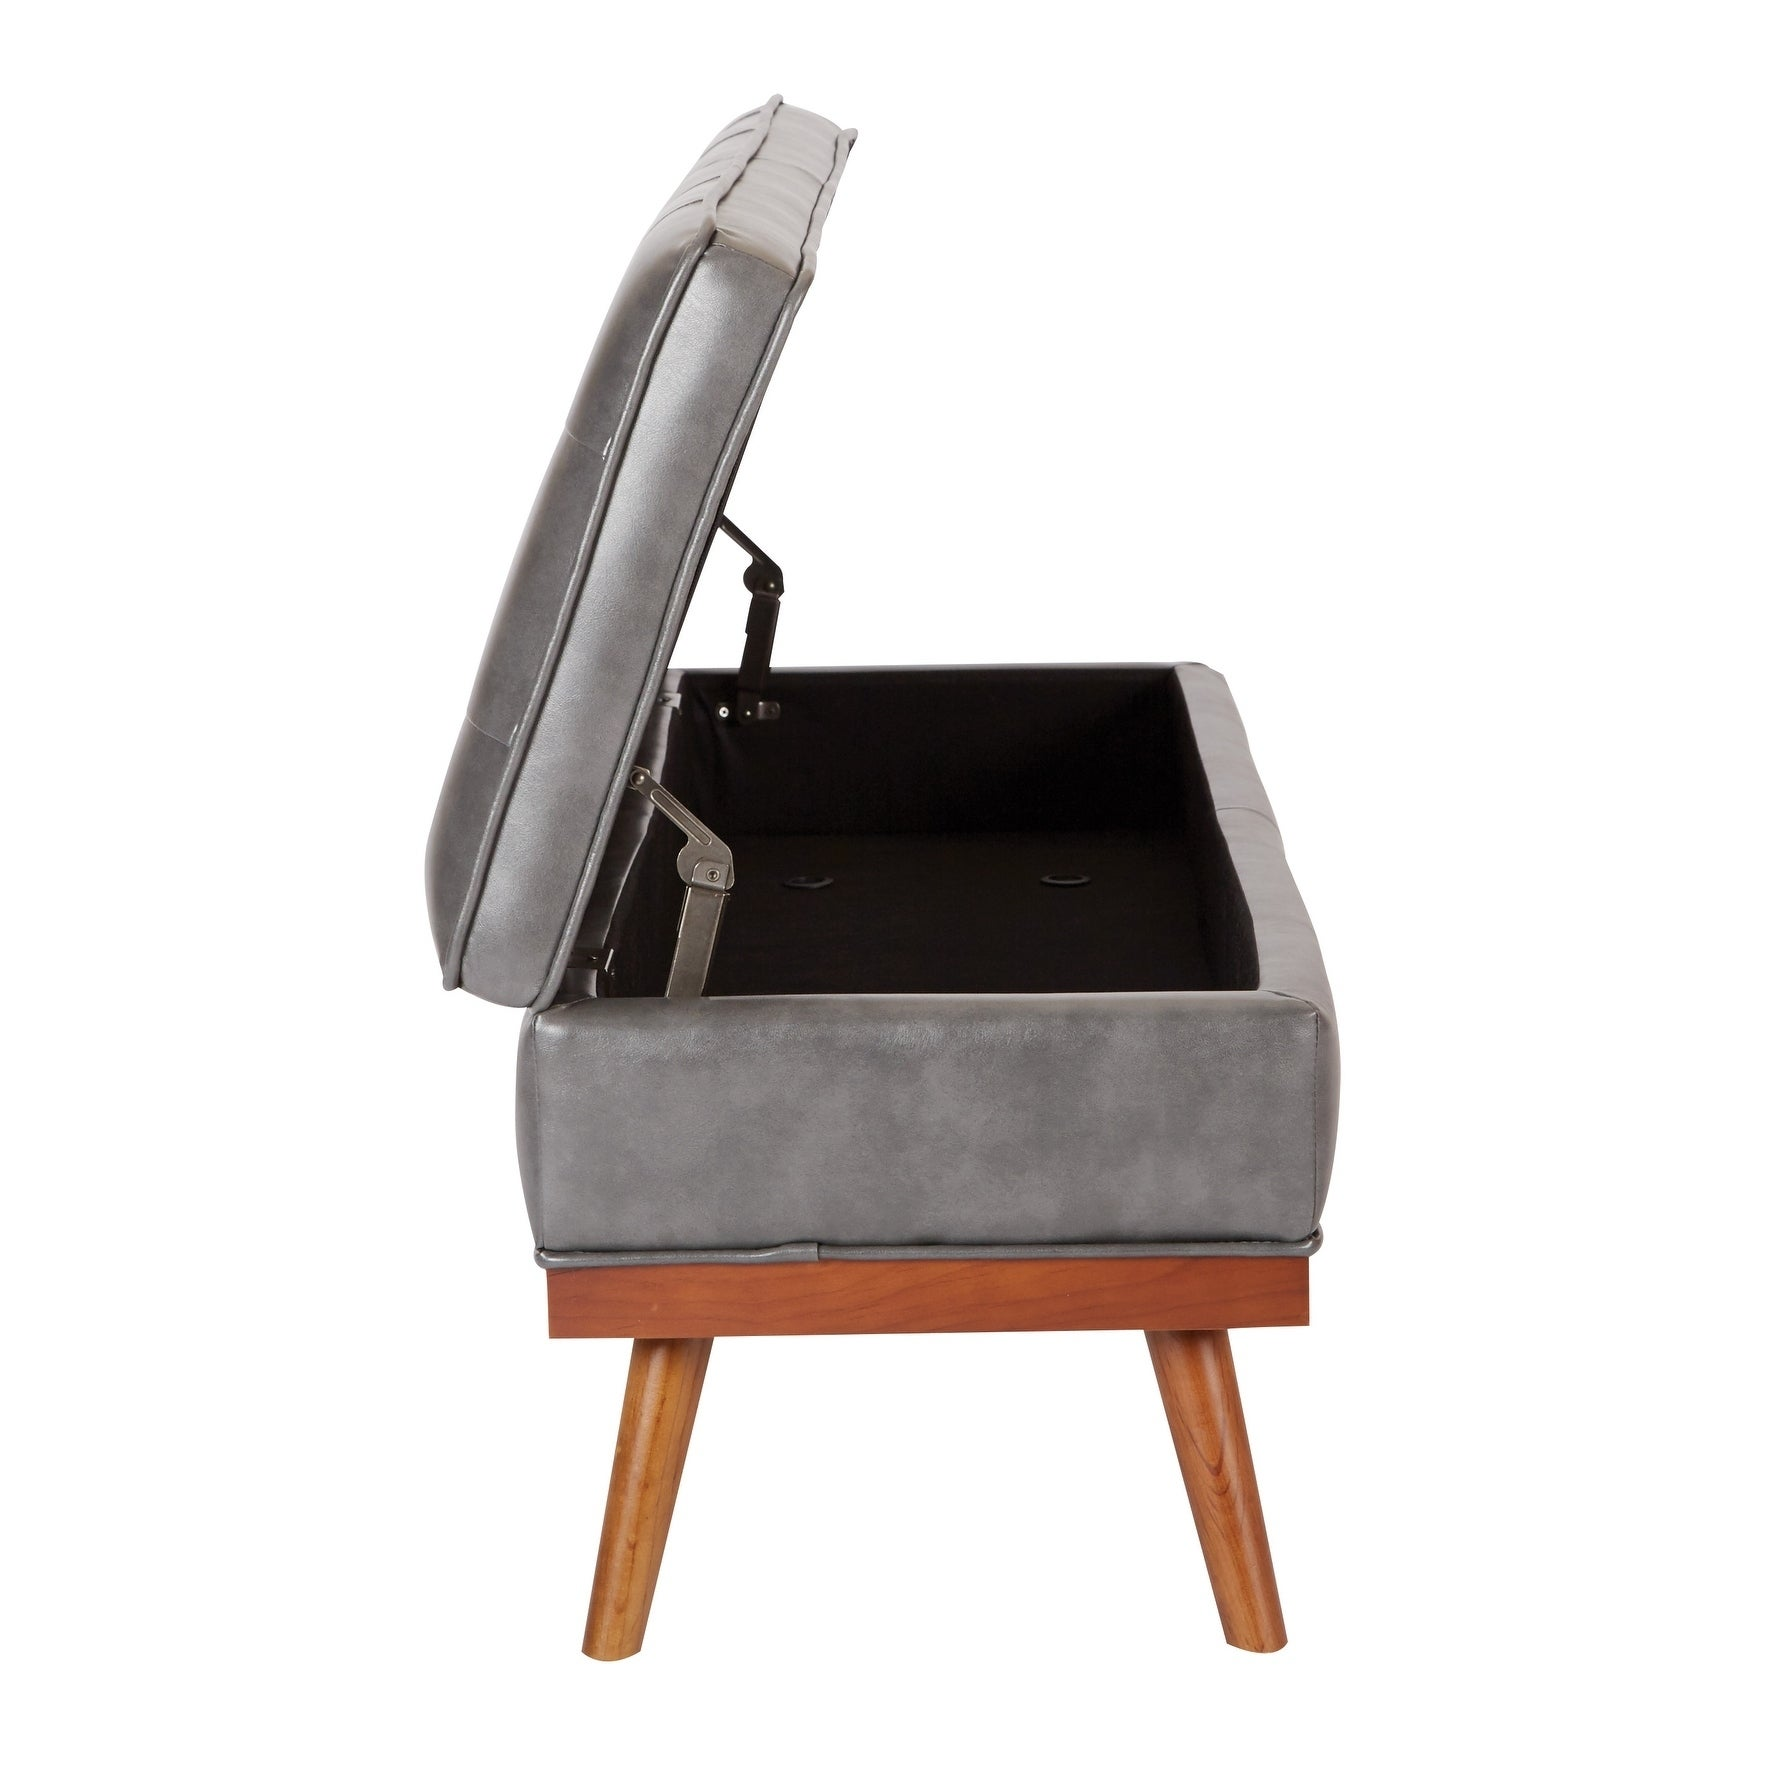 Sensational Osp Home Furnishings Mid Century Katheryn Storage Bench In Bonded Leather Andrewgaddart Wooden Chair Designs For Living Room Andrewgaddartcom